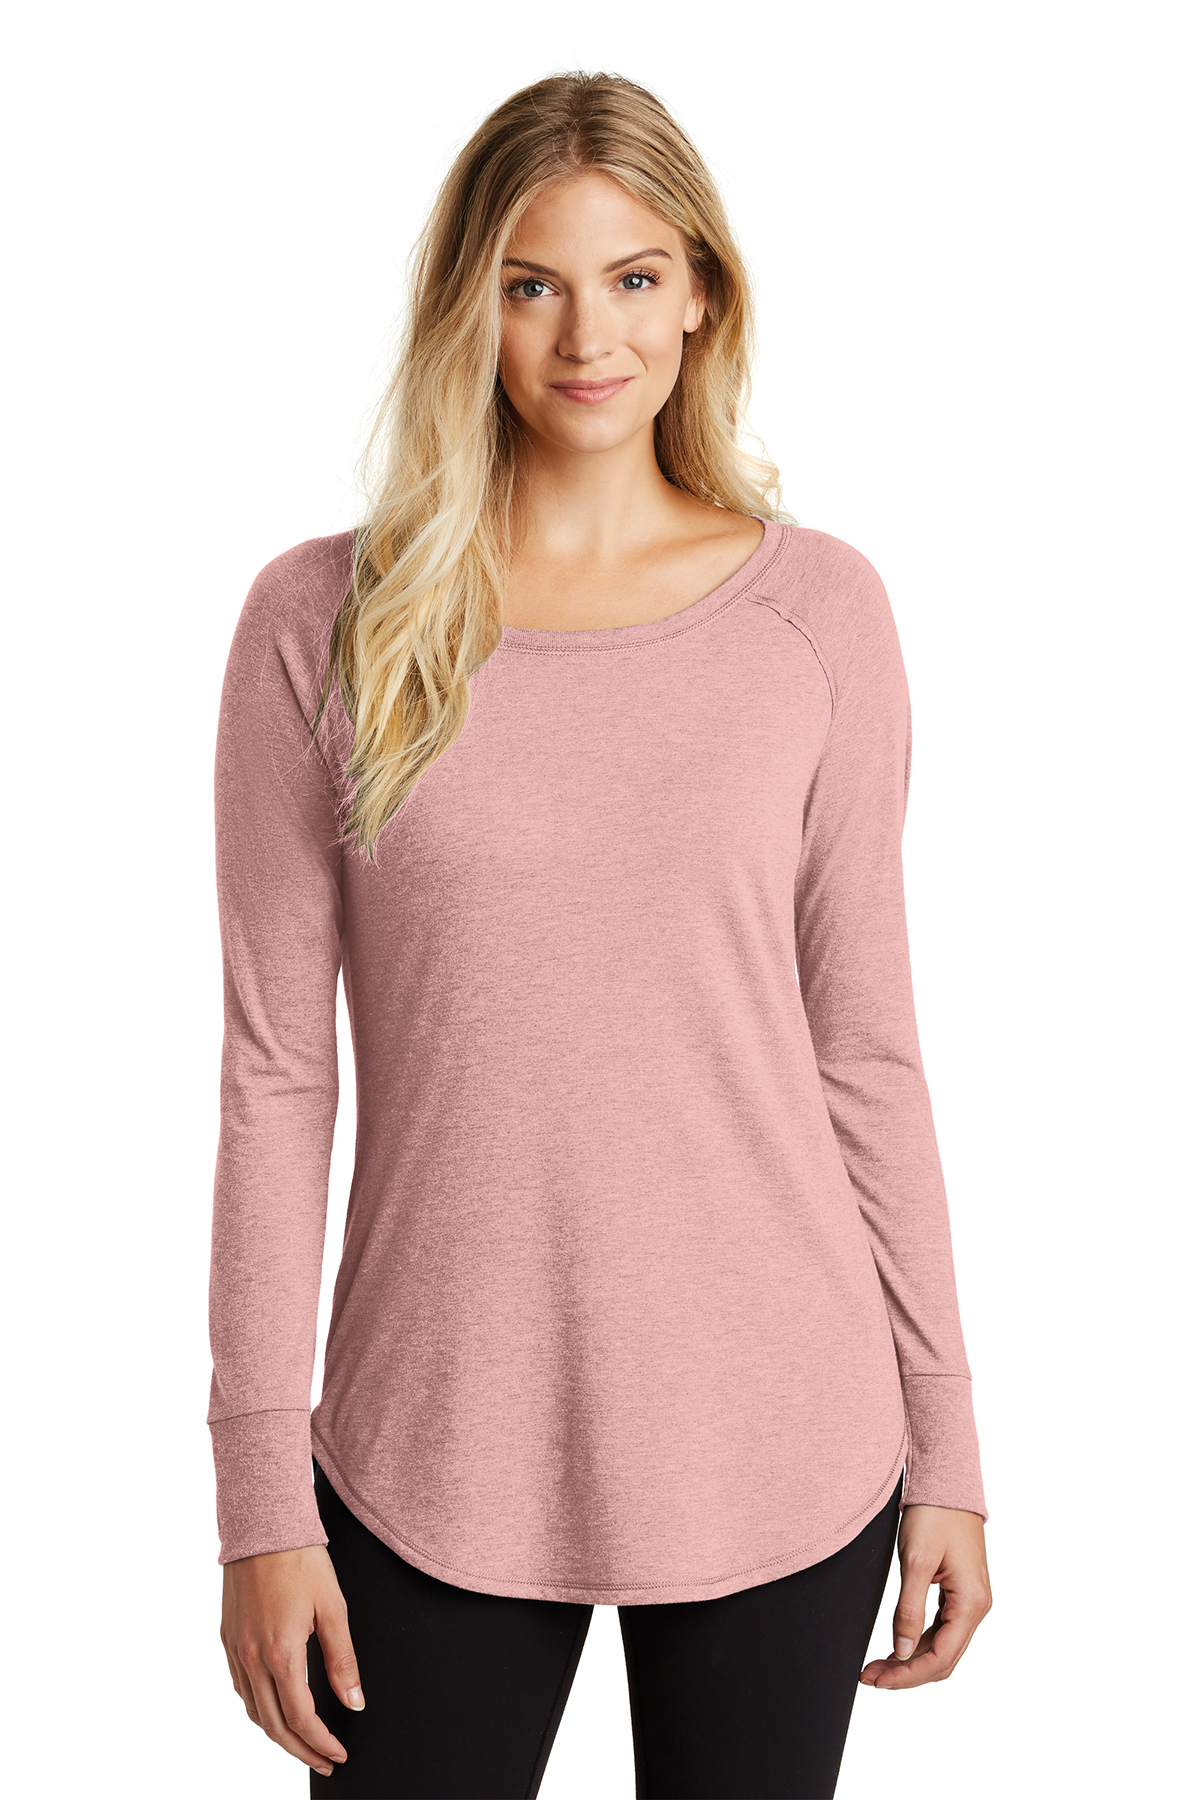 District Made DT132L - Ladies Perfect Tri Long Sleeve ...